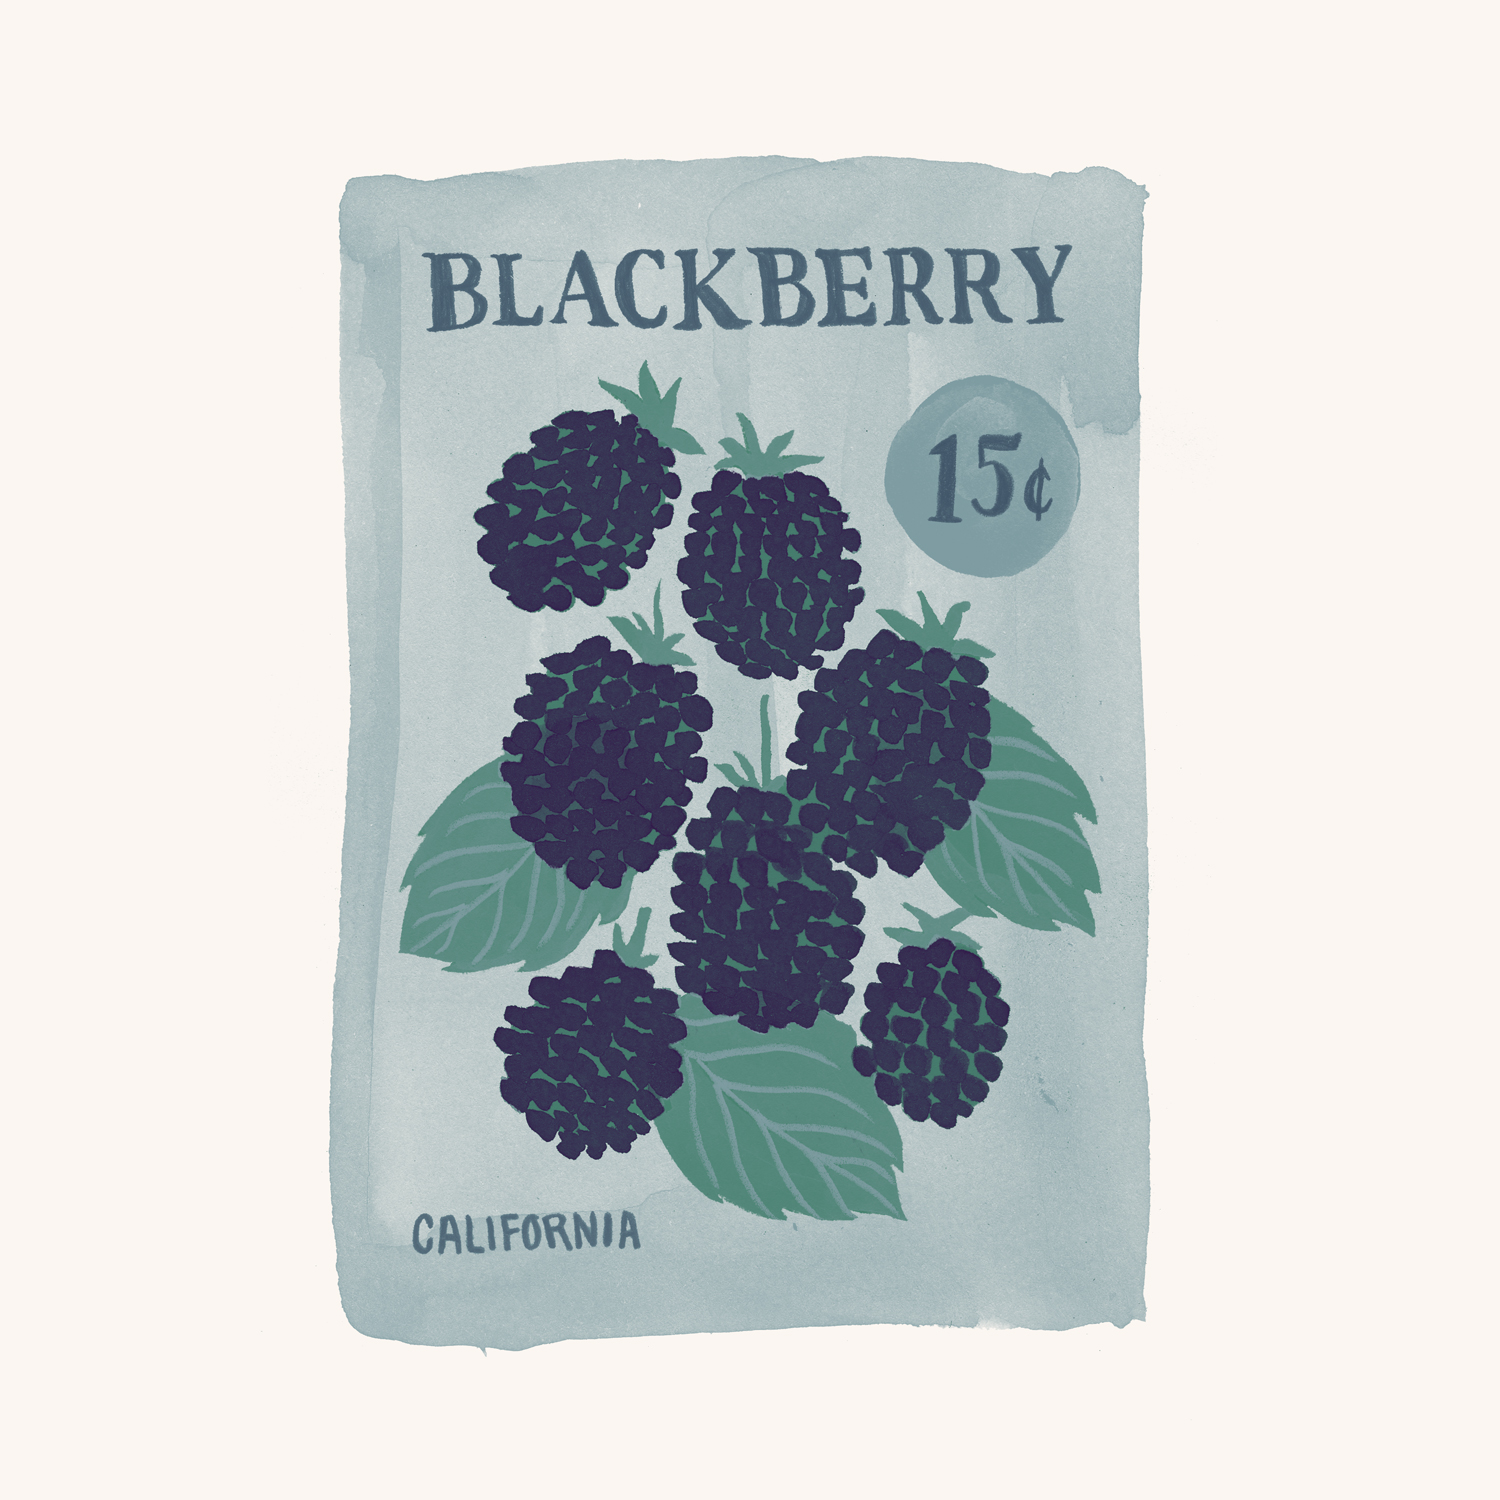 Seeds-blackberry-1500.jpg